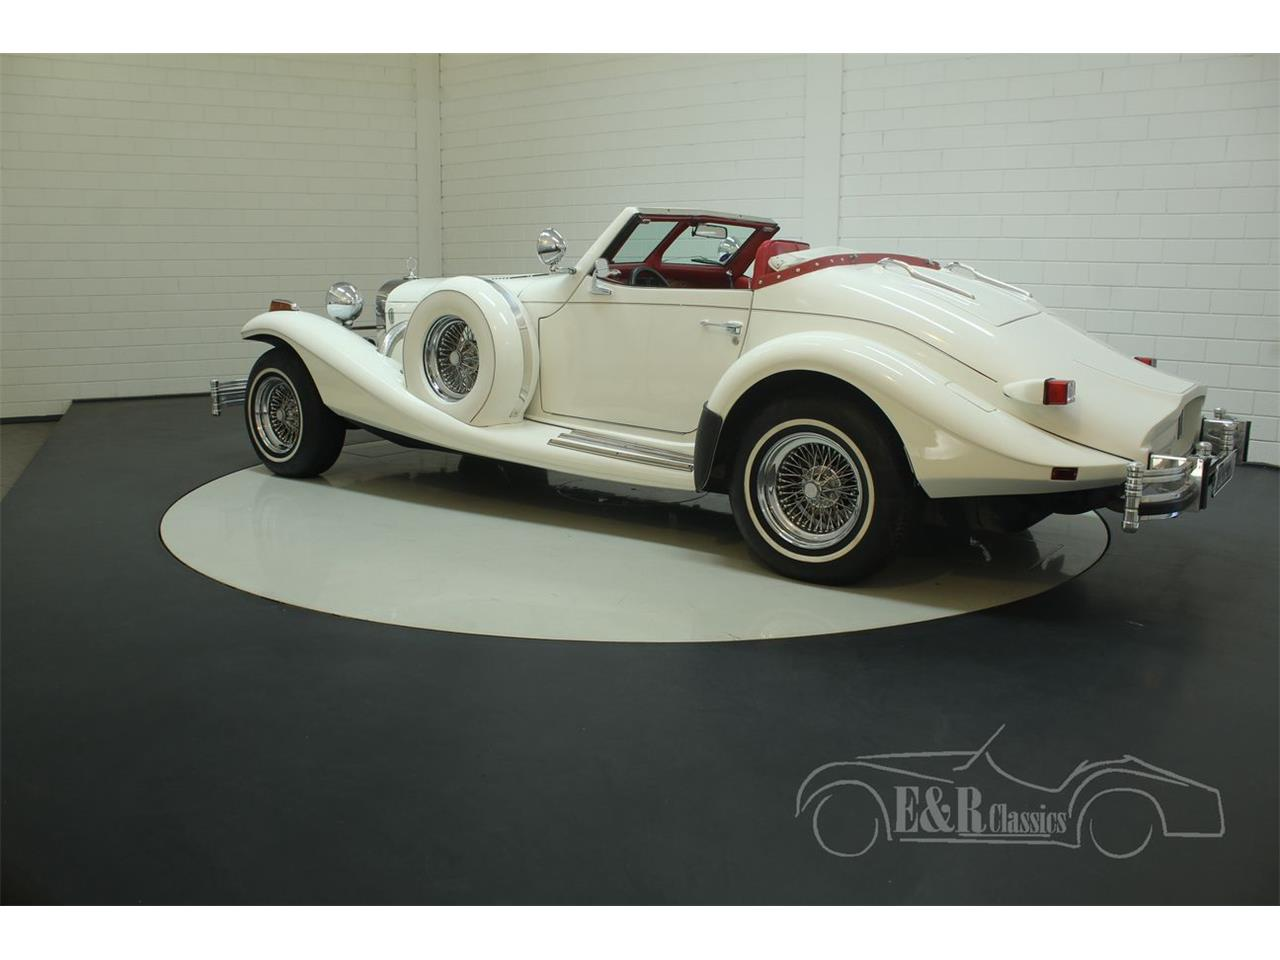 Large Picture of '82 Excalibur Series IV Phaeton located in noord brabant - $78,450.00 - Q3GF